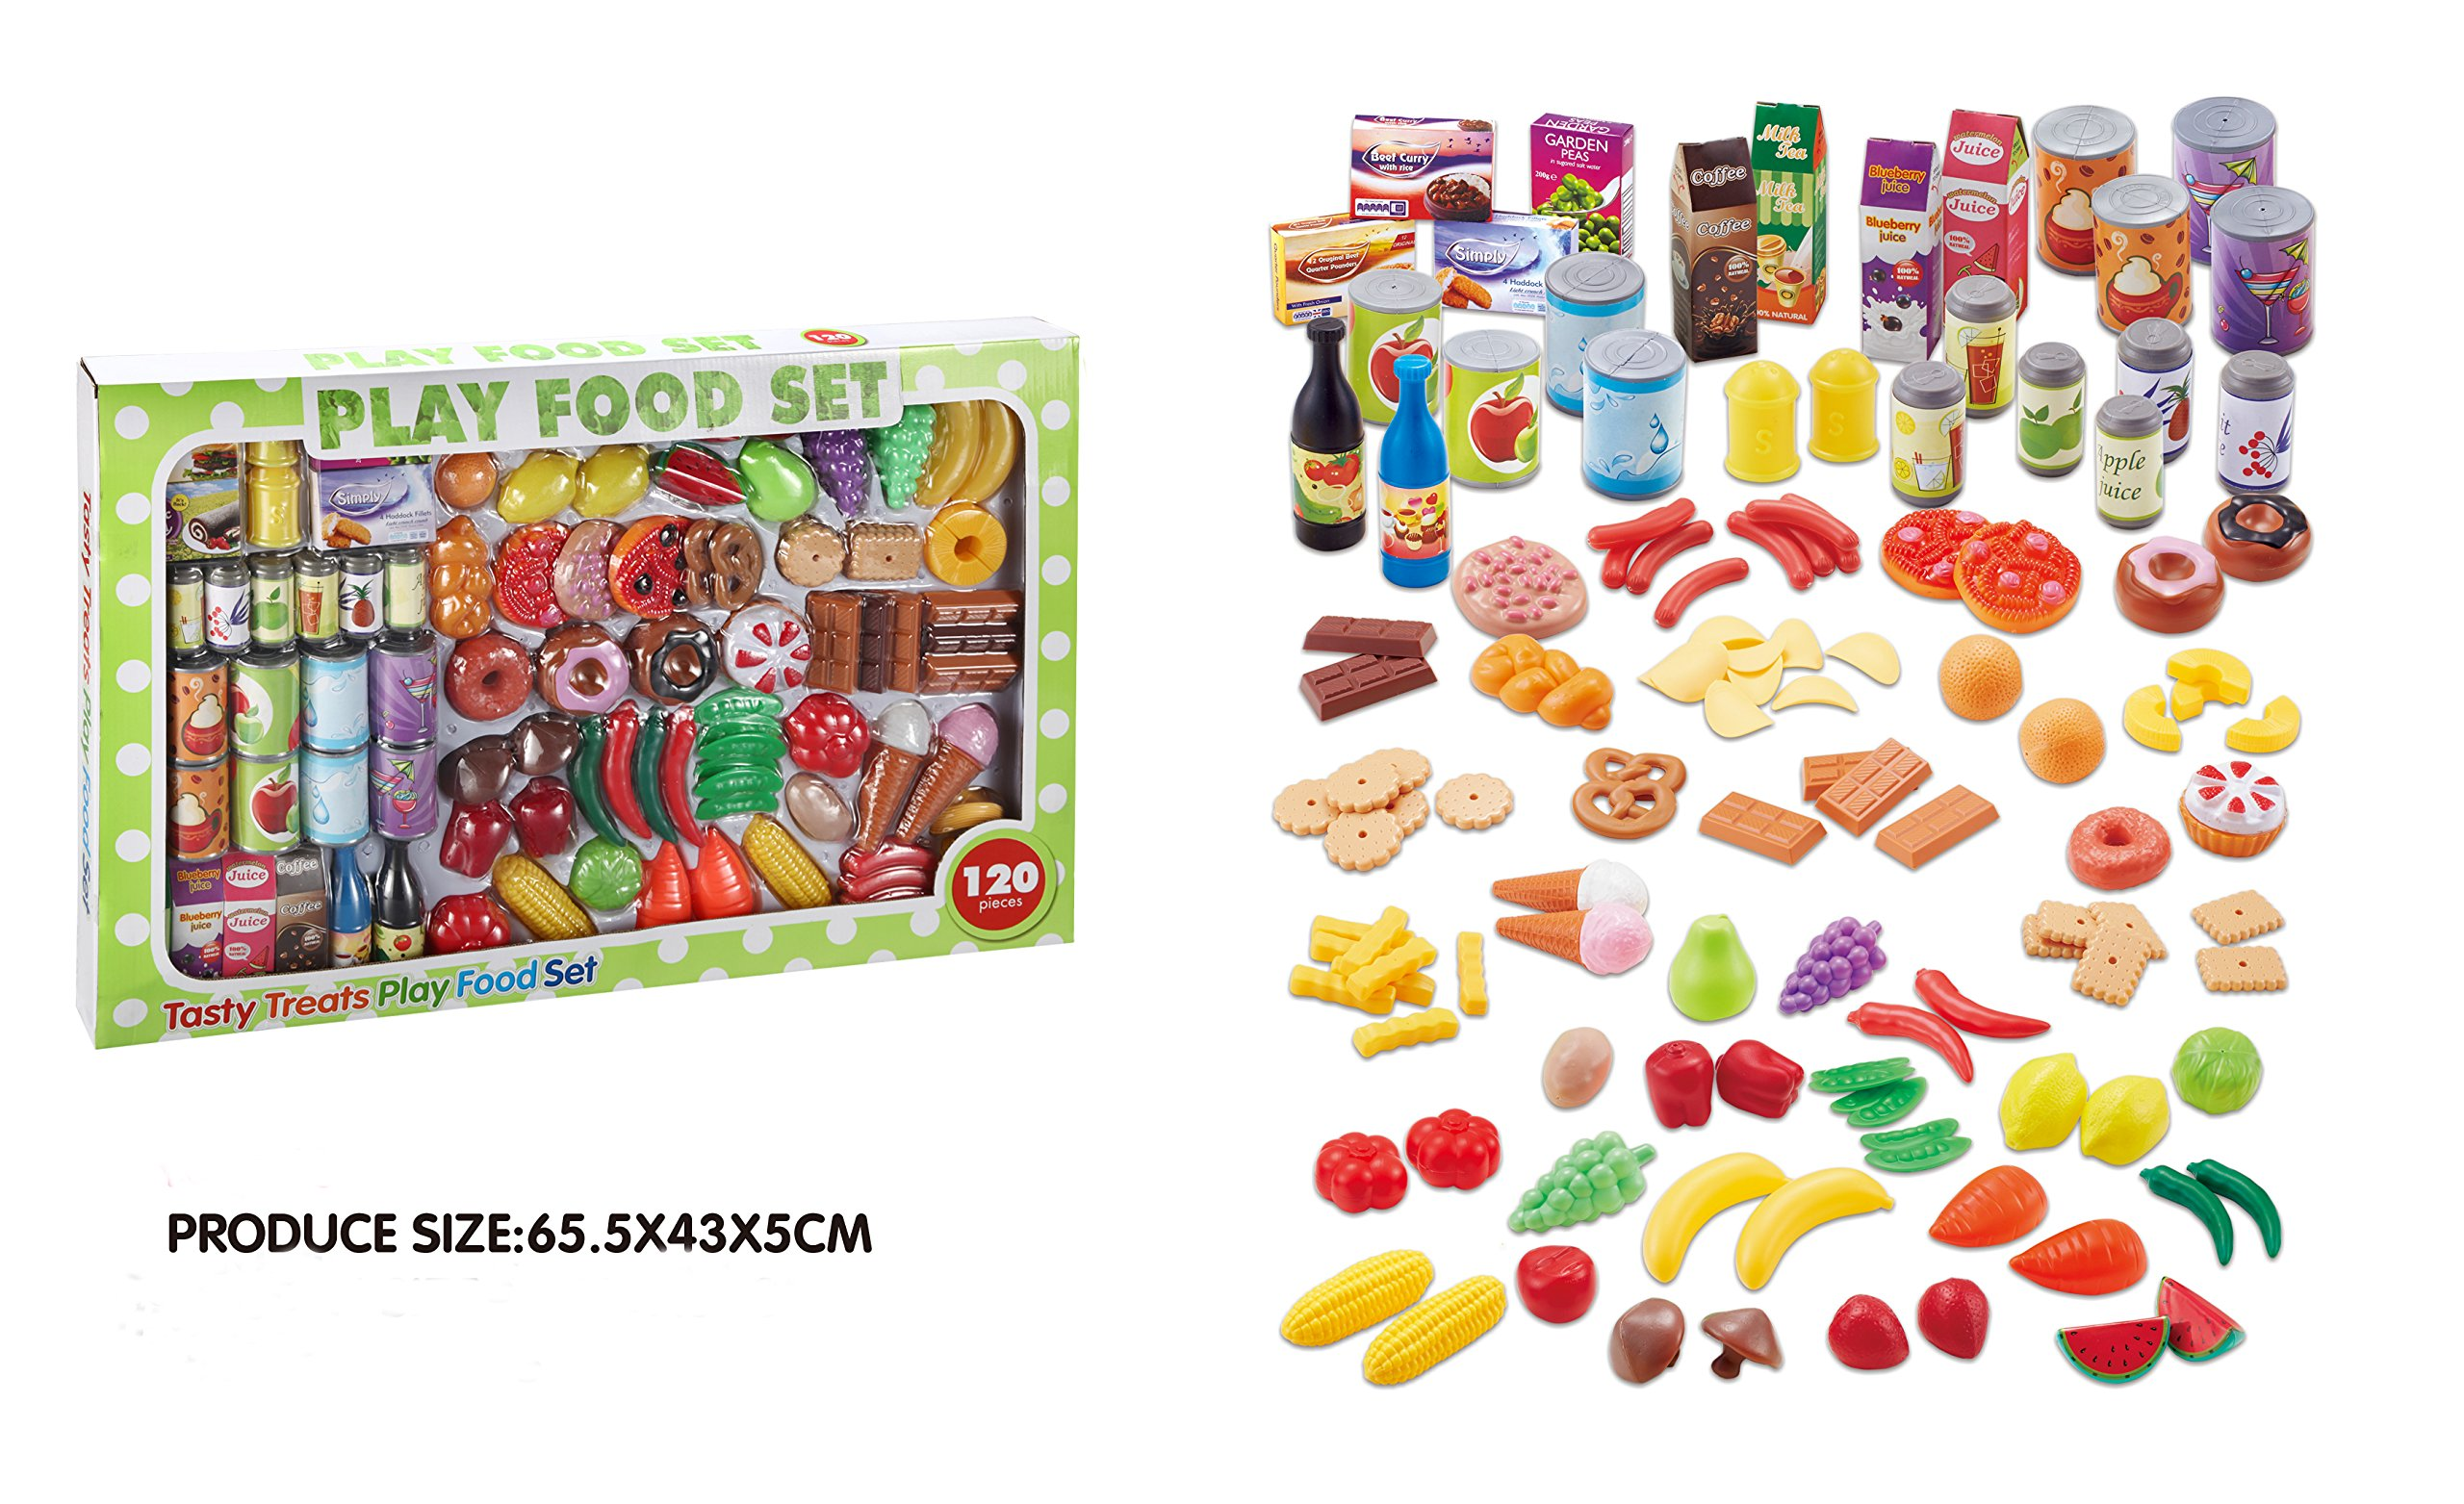 8a2ce942b5fc 120pc Play Food Set for Kids   Toy Food for Pretend Play – Huge 125 Piece  ...